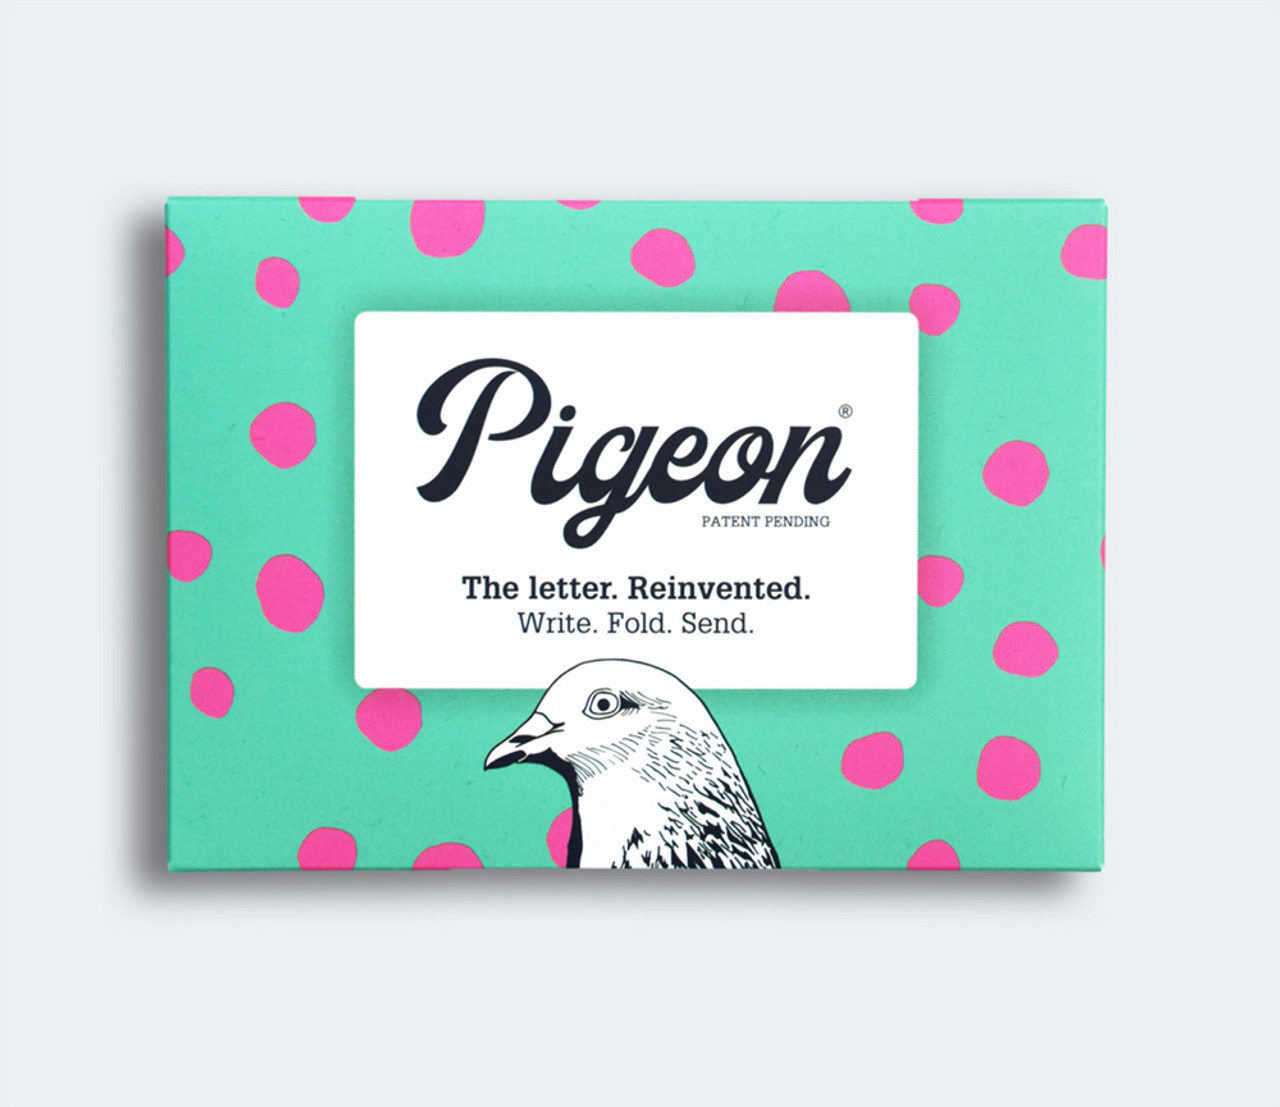 Pigeon Posted - Playful Pigeons pack